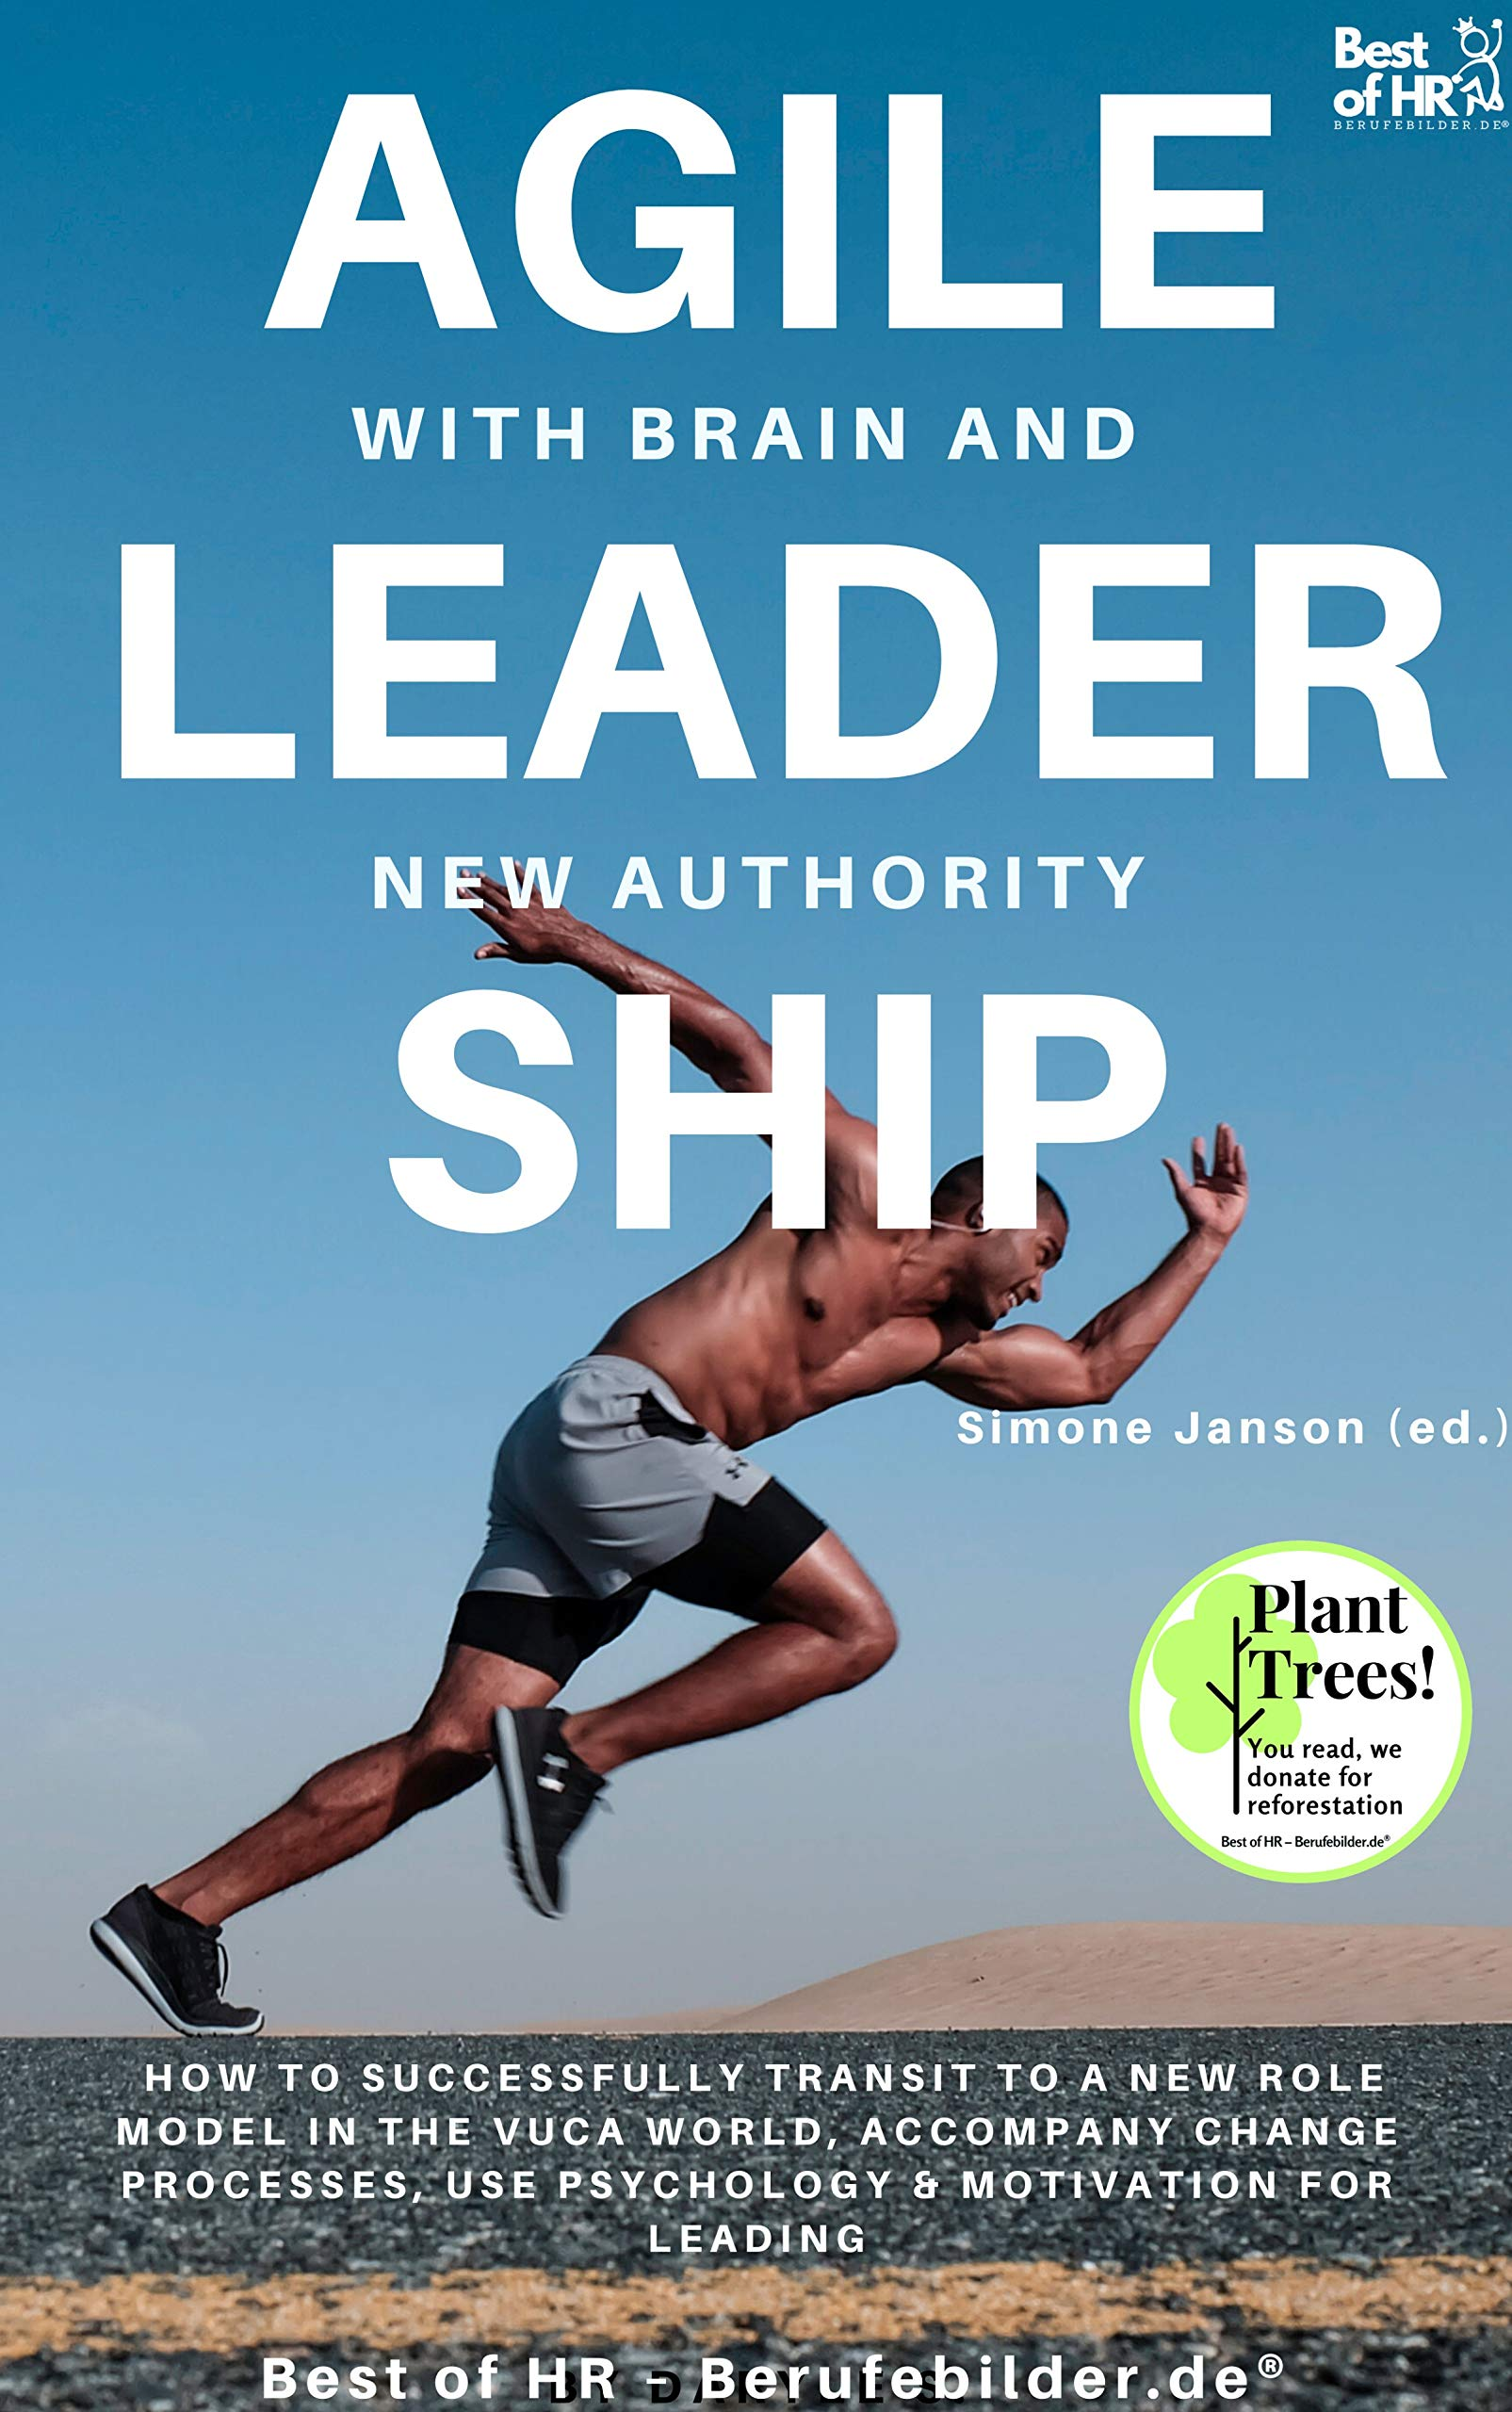 Agile Leadership with Brain and New Authority: How to successfully transit to a new role model in the VUCA world, accompany change processes, use psychology & motivation for leading